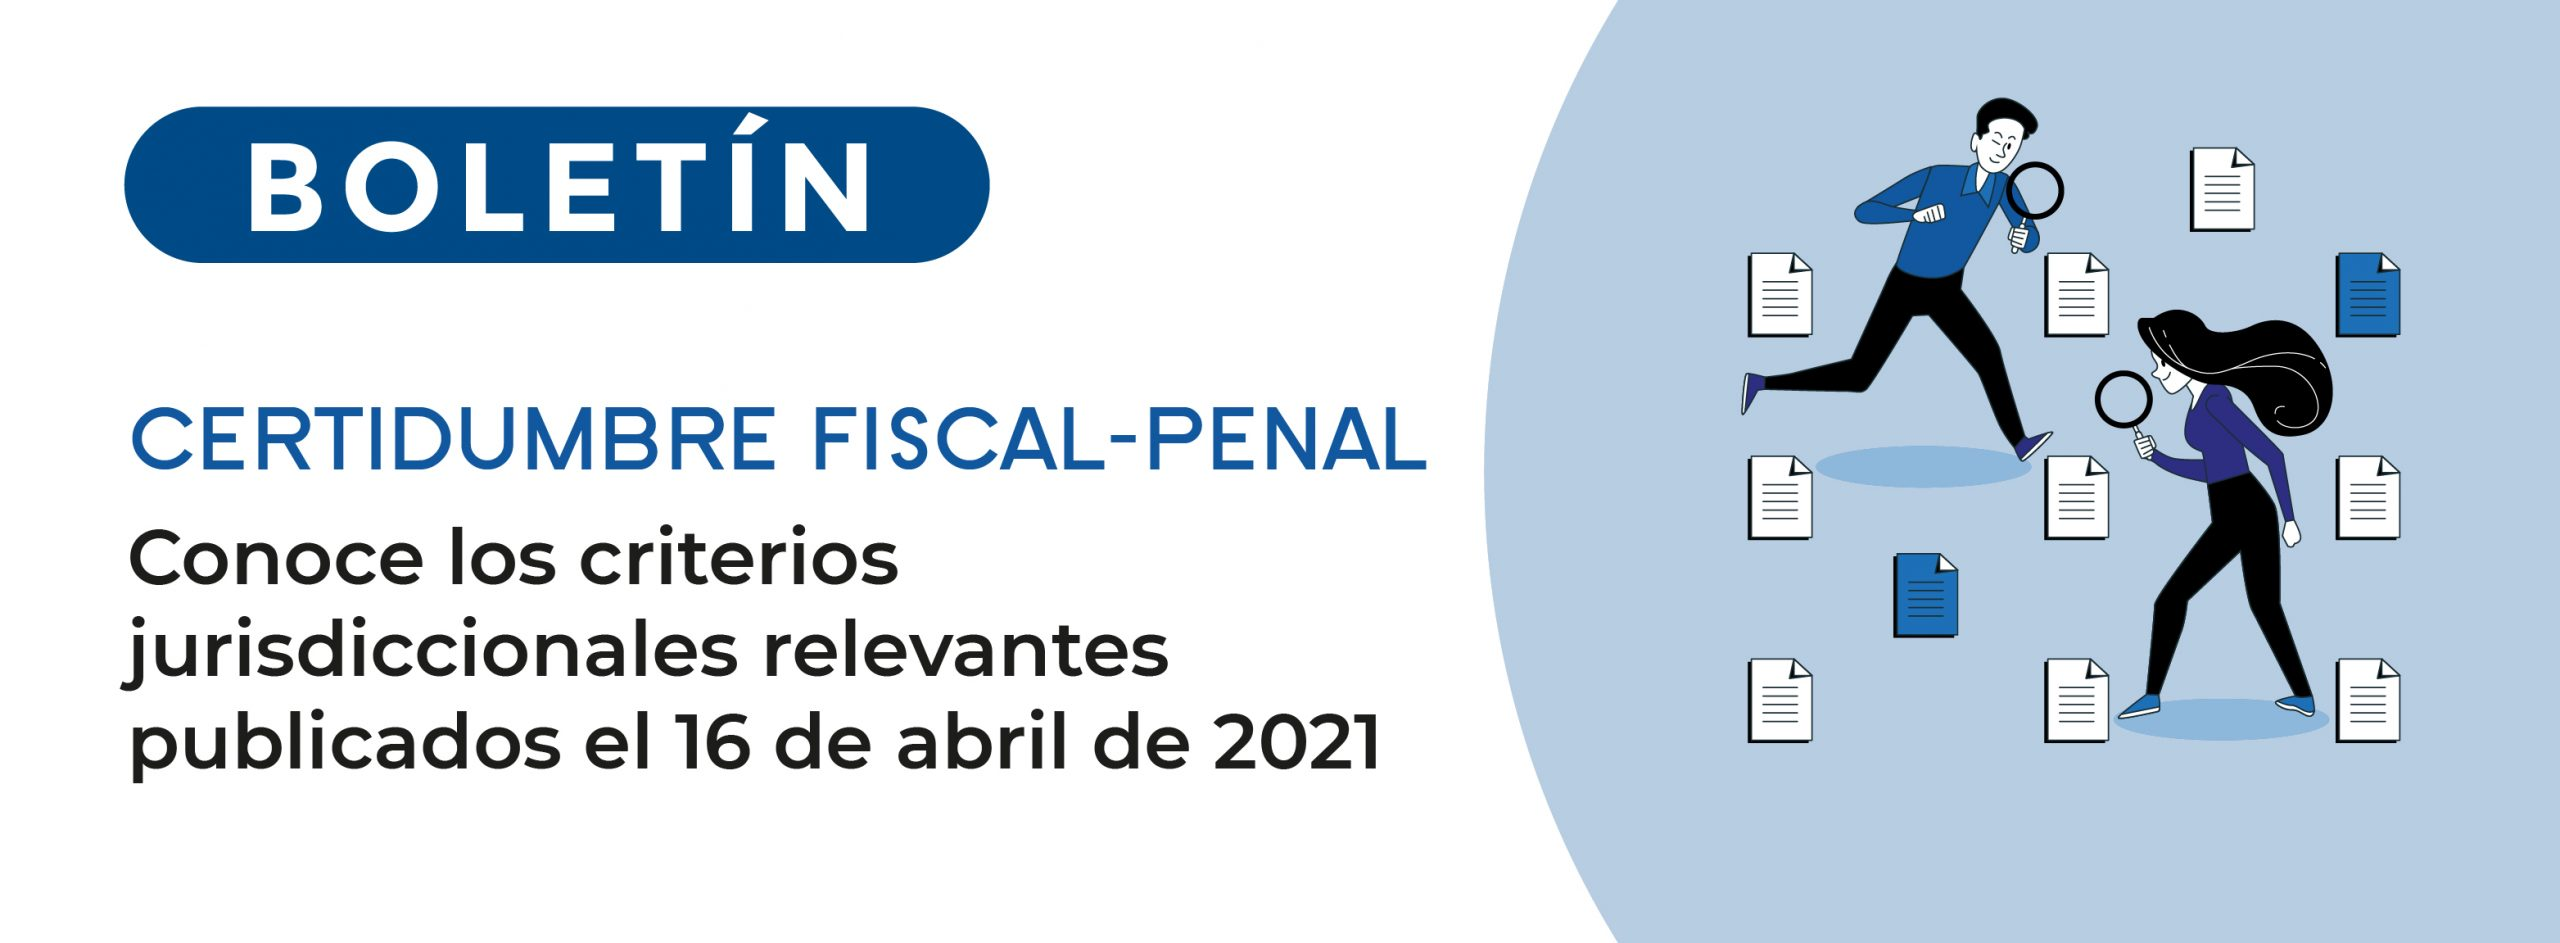 Criterios Jurisdiccionales 16 abril 2021